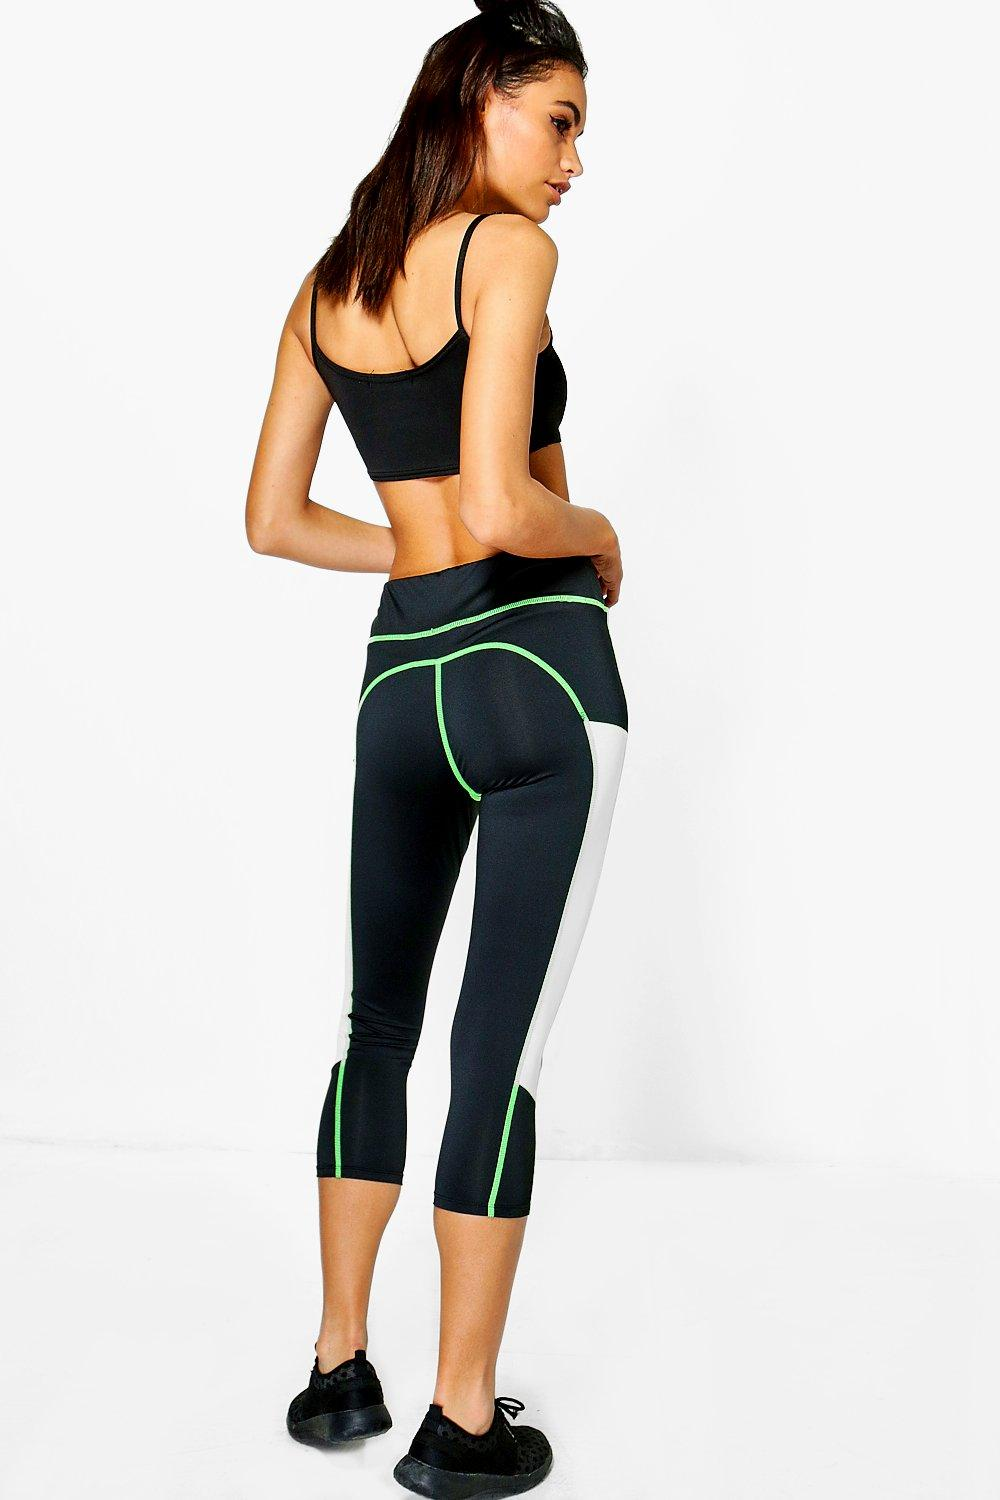 Rose Fit Mesh Insert Capri Running Legging green